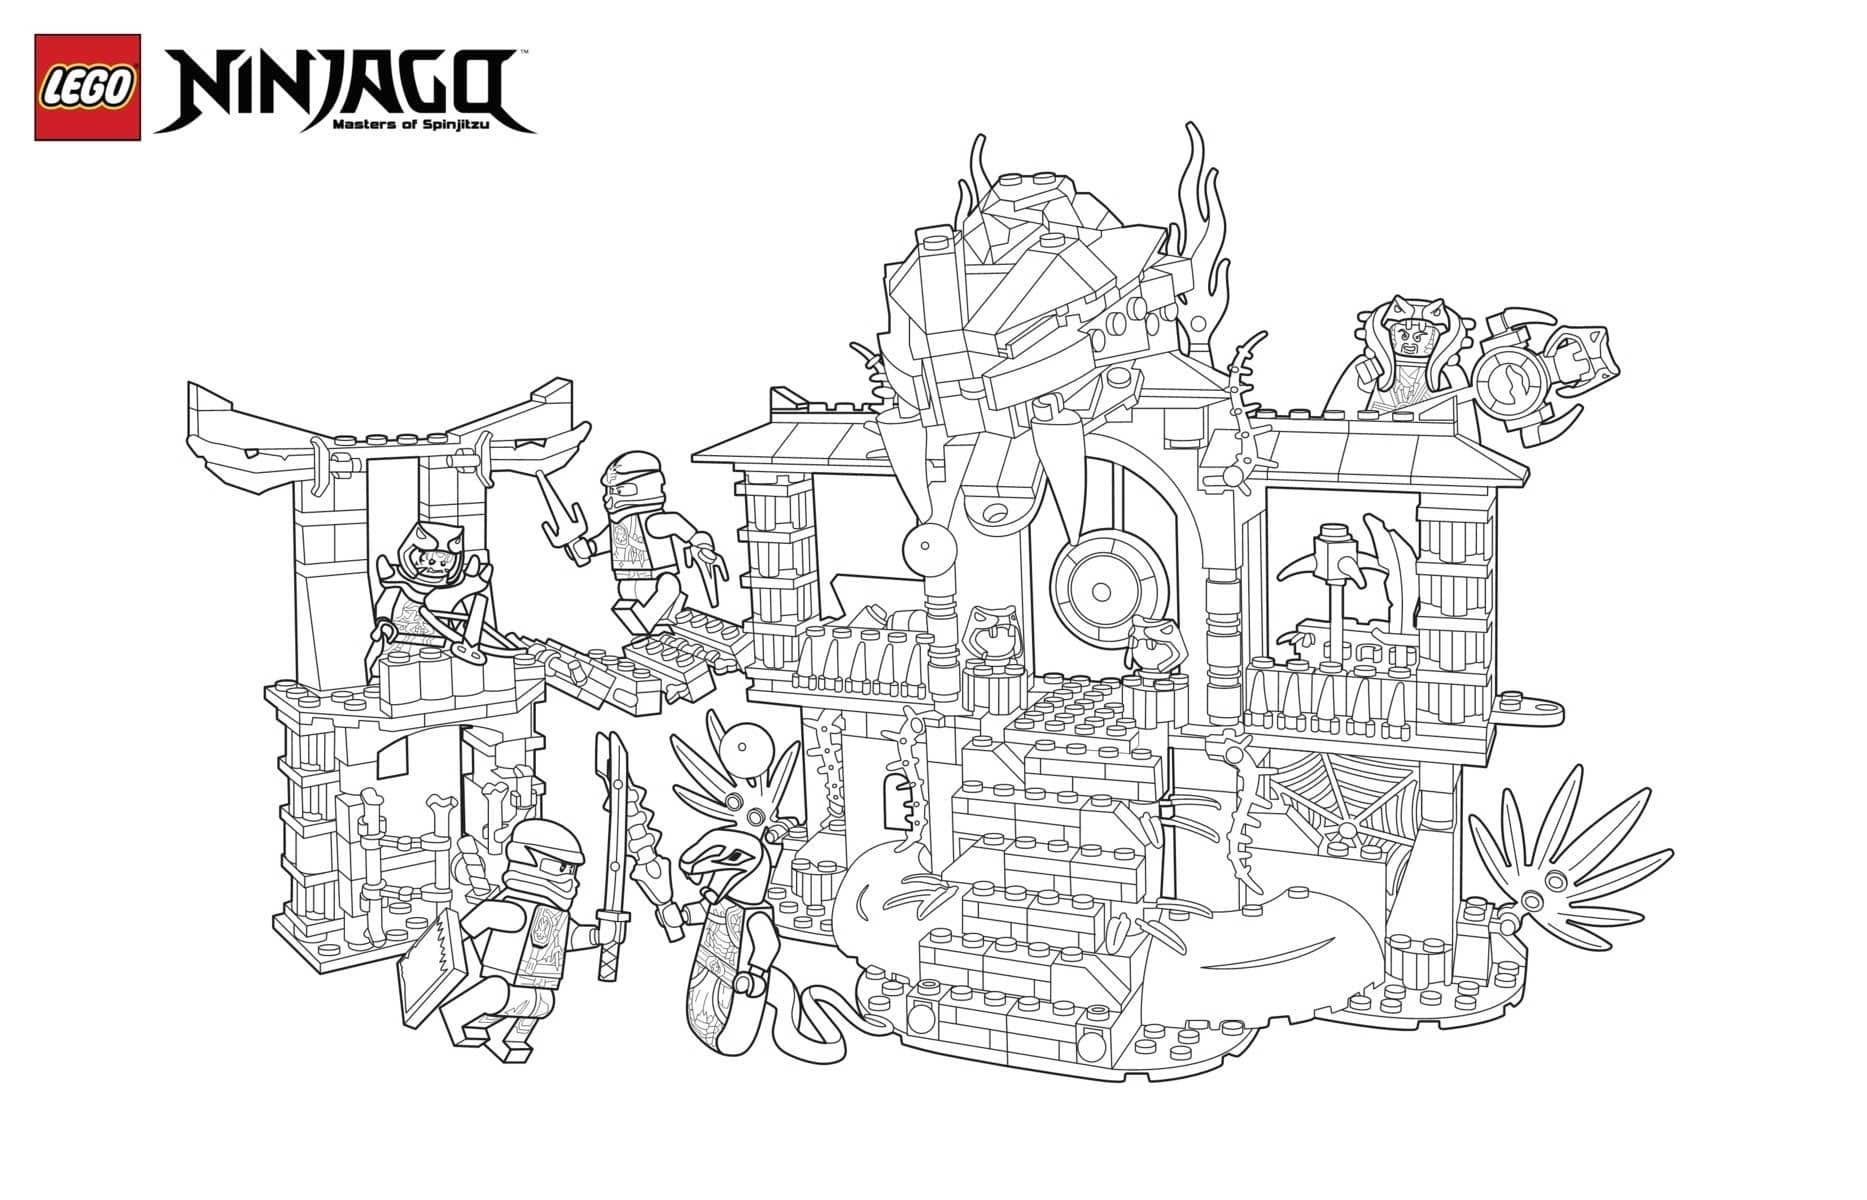 Lego Coloring Pages. Download or print for free, 100 images